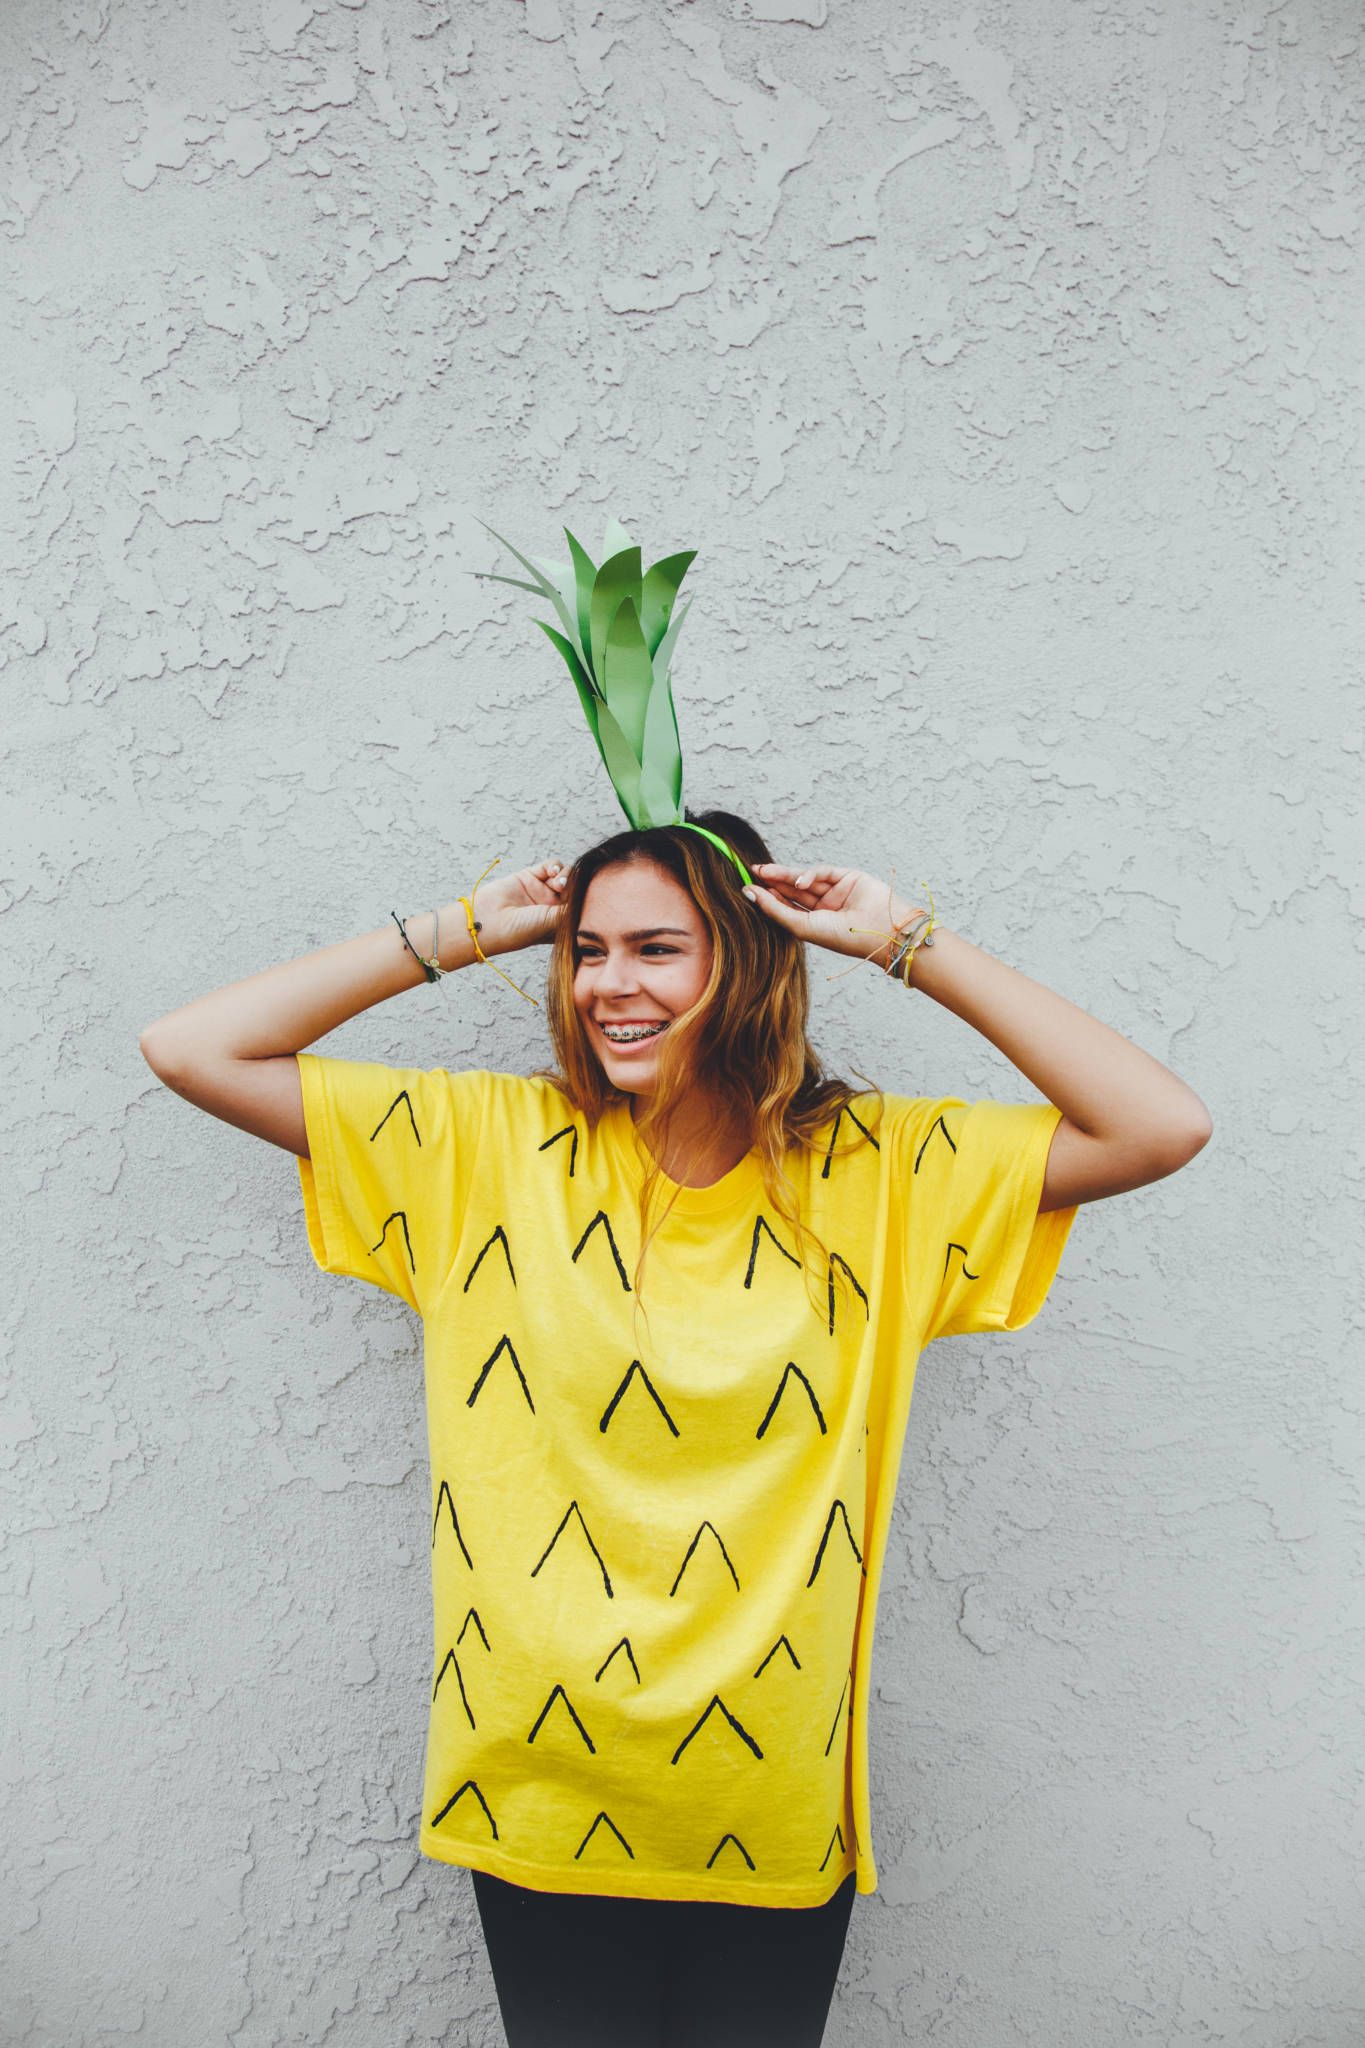 Be a Pineapple Halloween Costume DIY  sc 1 st  Pinterest & Be a Pineapple: Halloween Costume DIY | Spooky | Pinterest ...